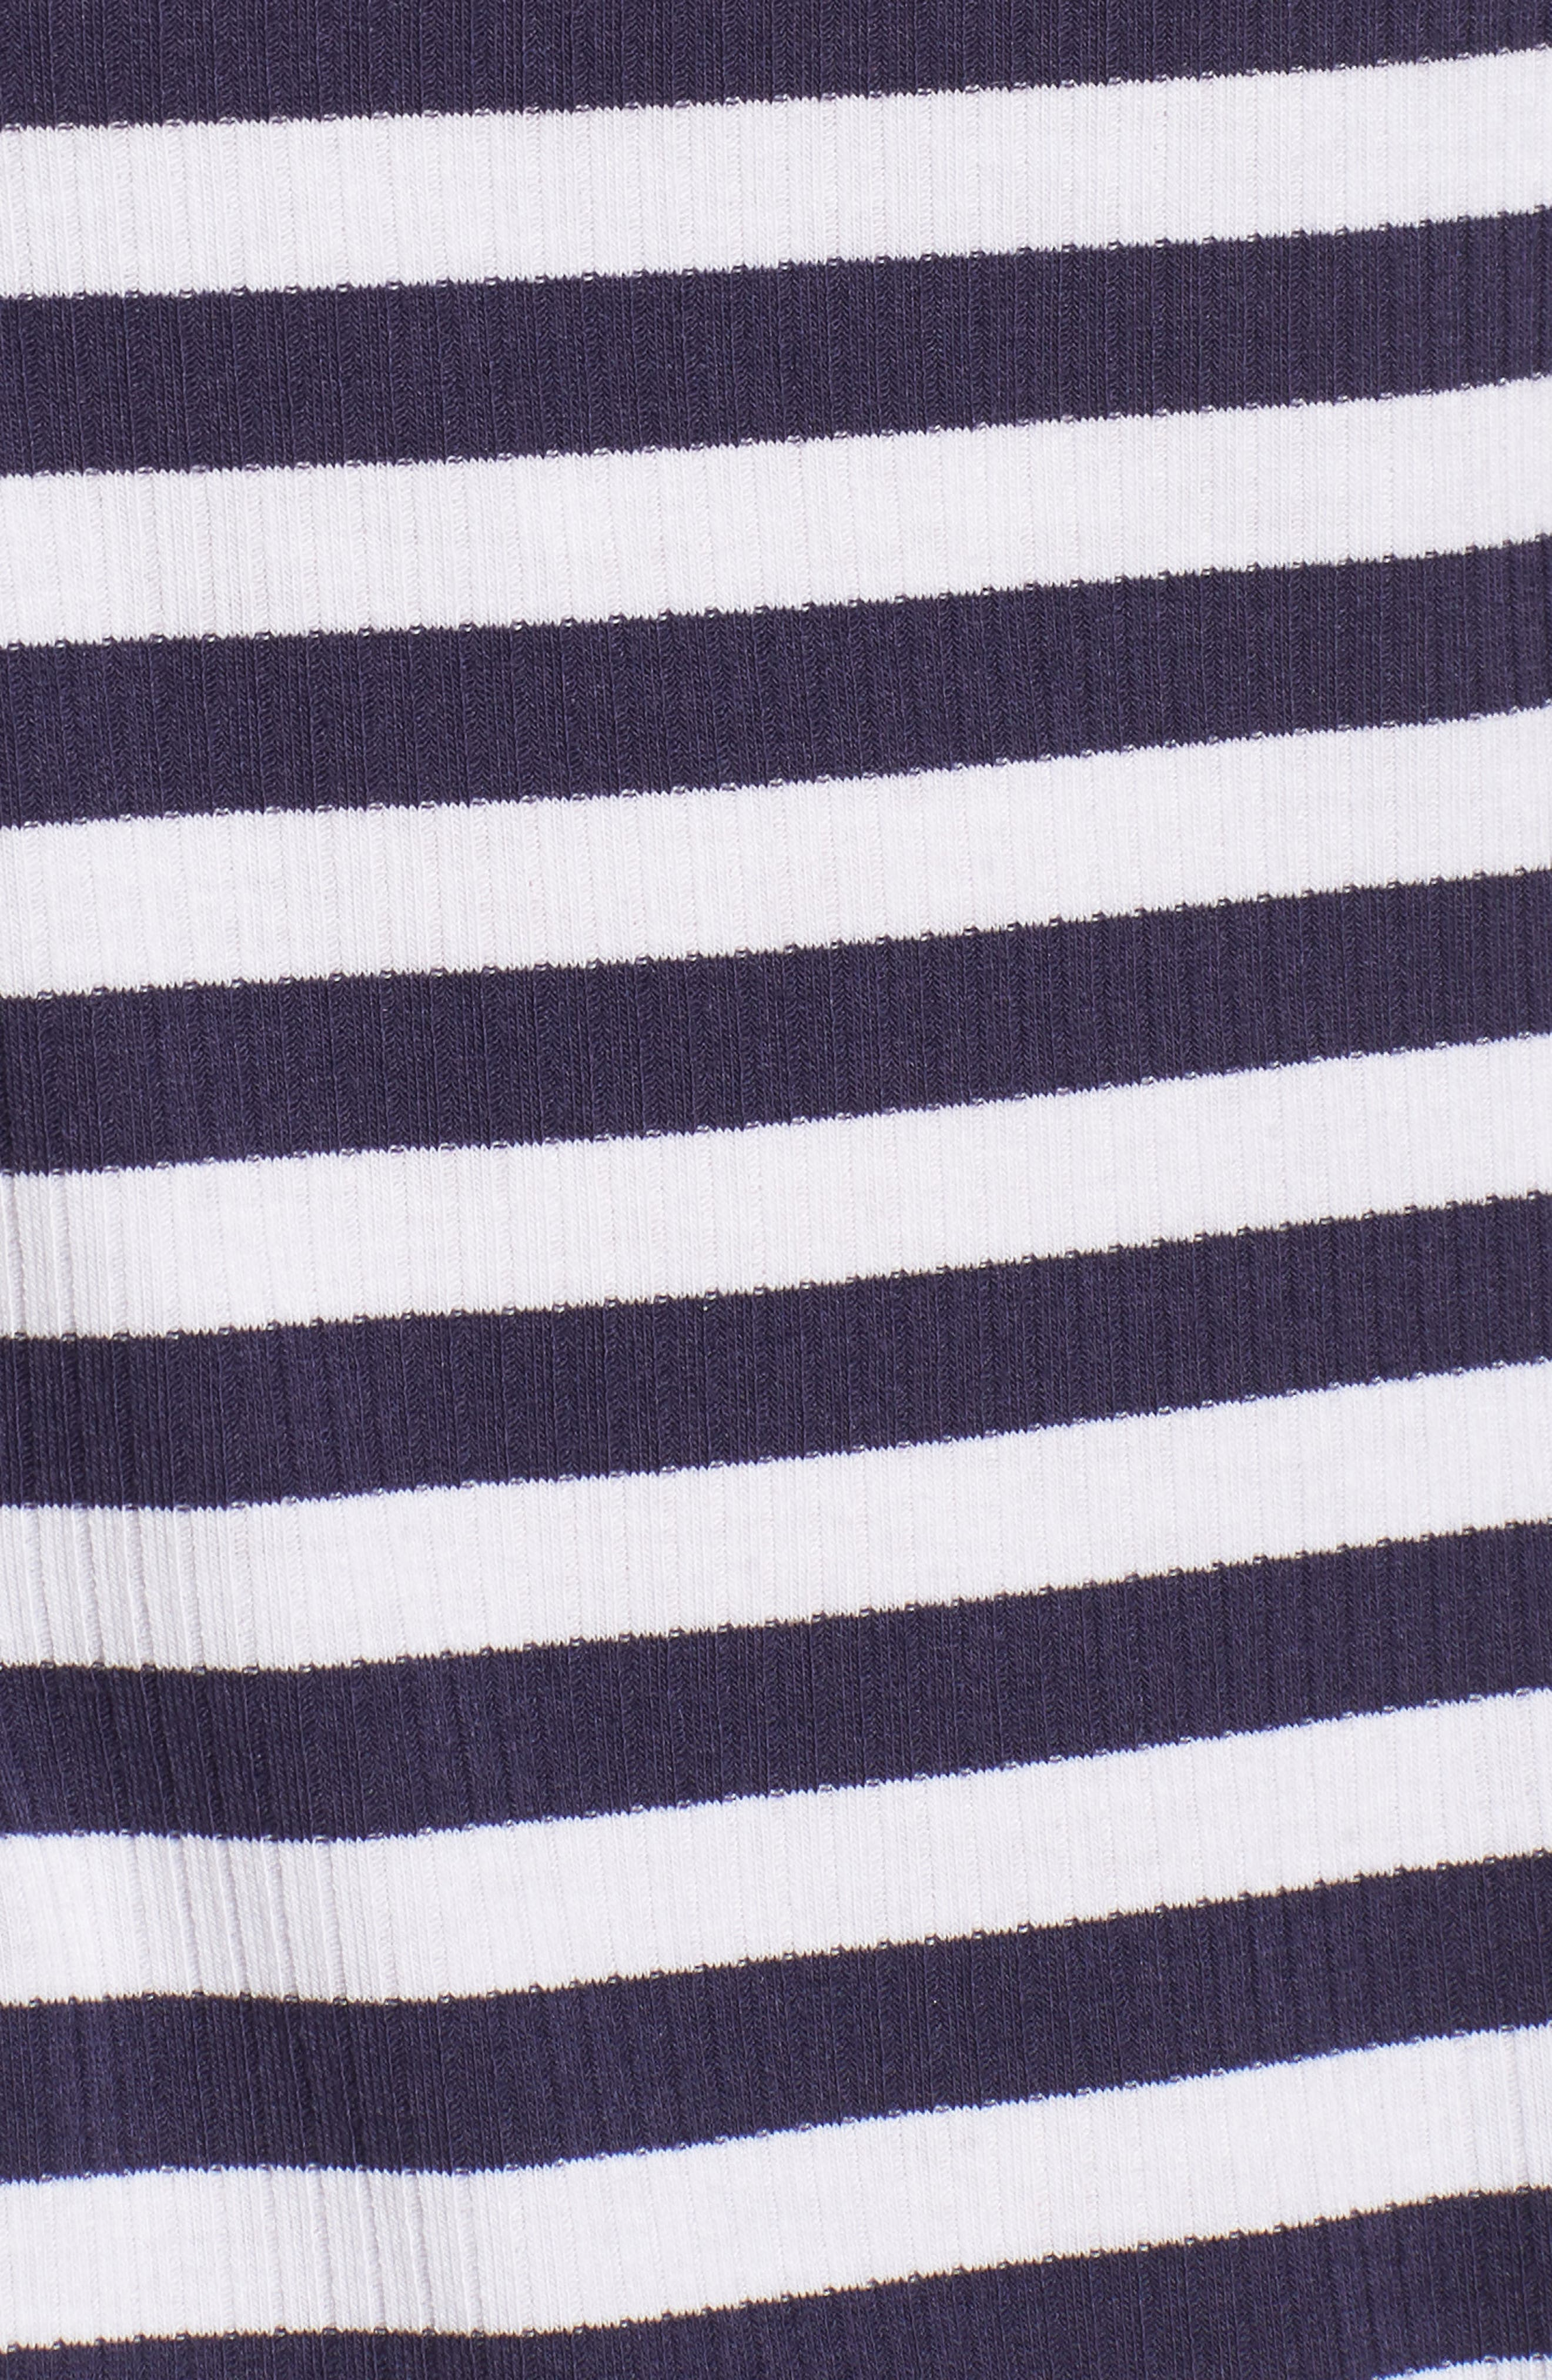 Stripe Peplum Tee,                             Alternate thumbnail 6, color,                             Navy/ White Stripe